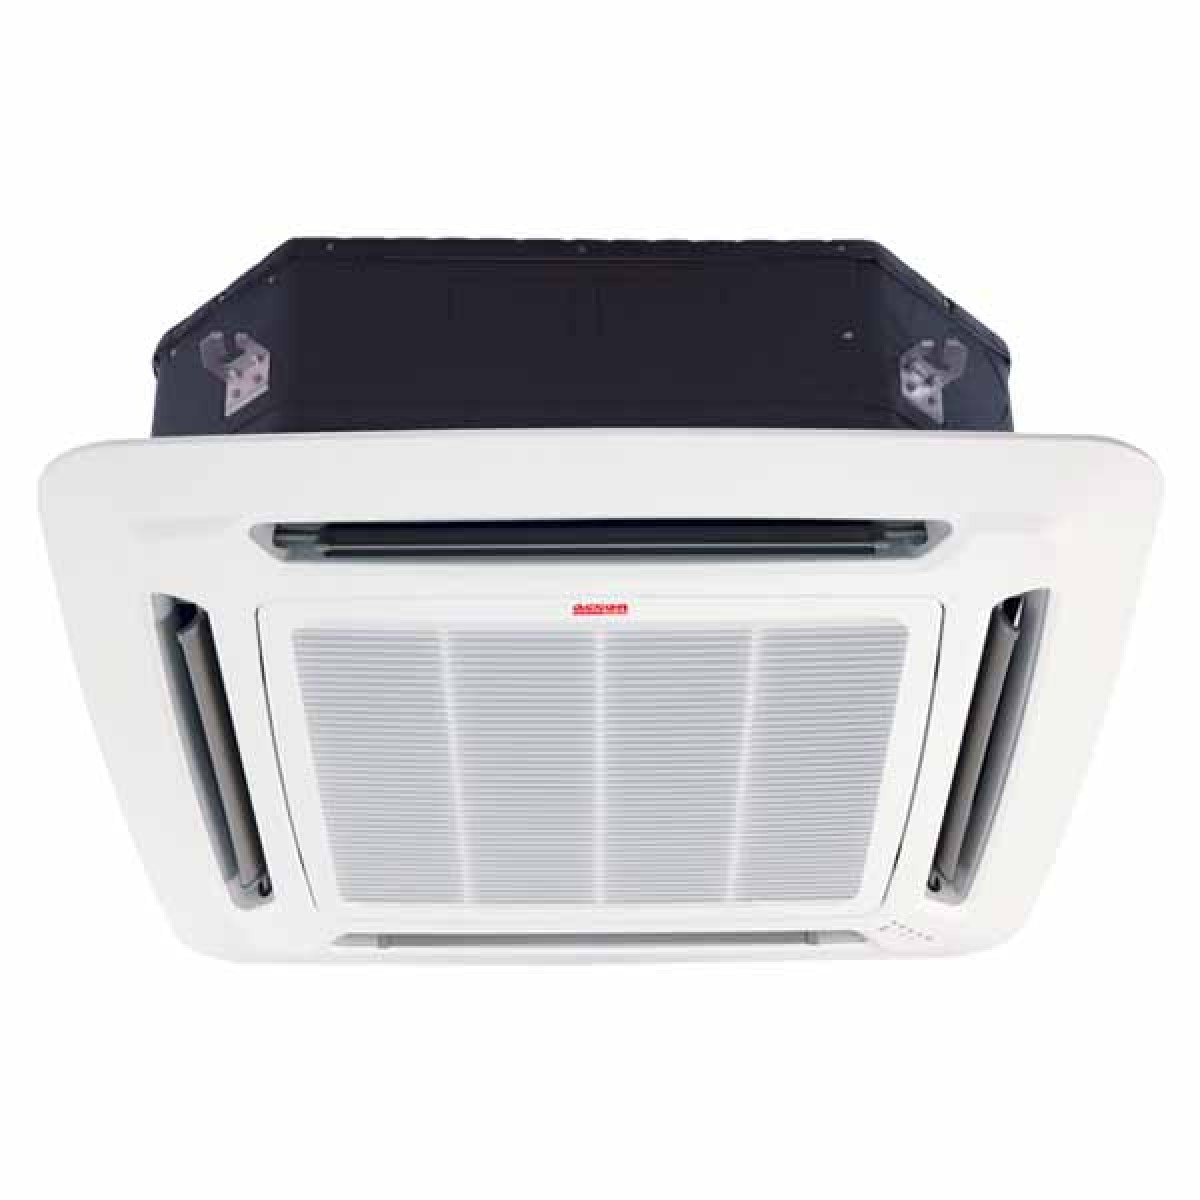 Acson Ceiling Cassette Inverter Air Conditioner Heat & Cool 2 0 Ton  (A5CKY28ER/A5LCY28CR)